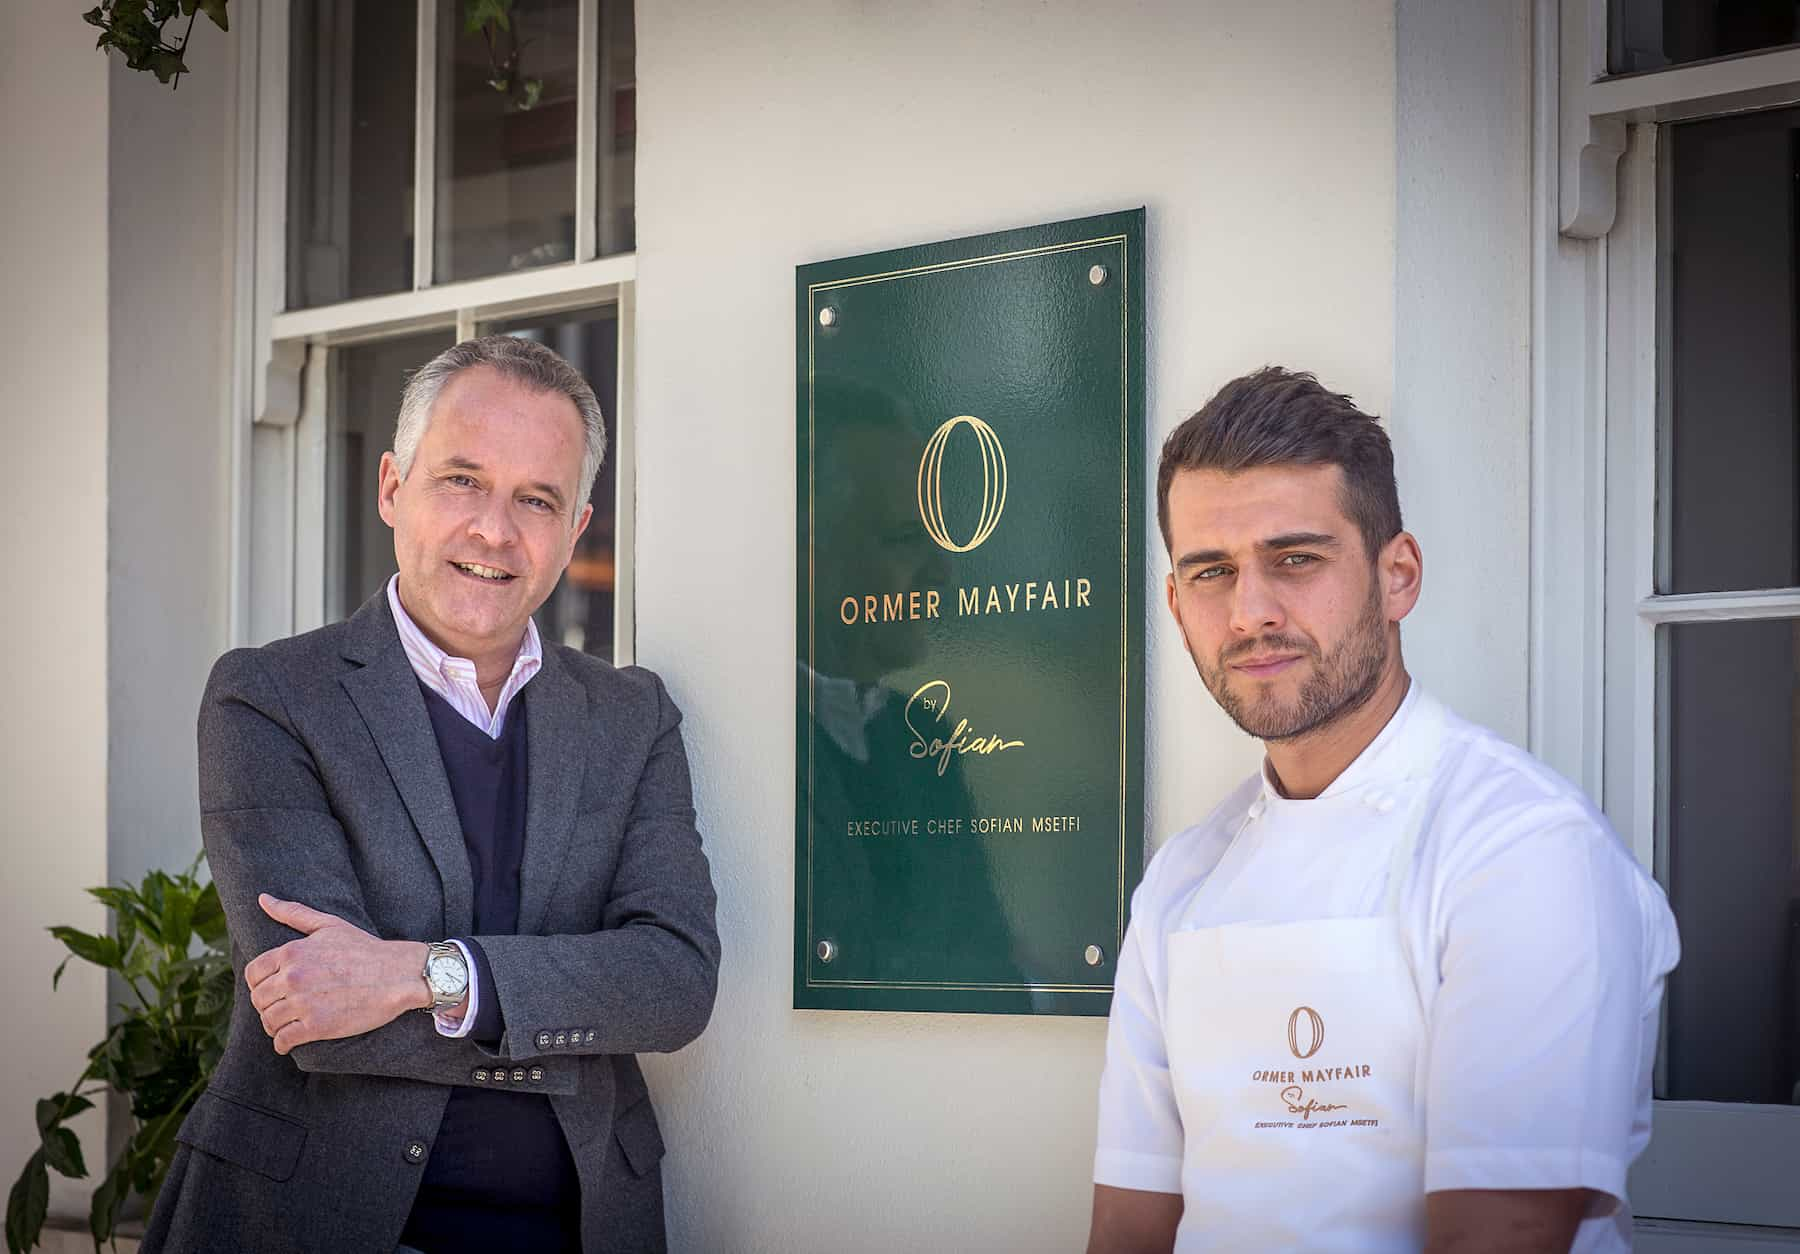 Ormer Mayfair  London's best Restaurants reopening 17th May indoor dining